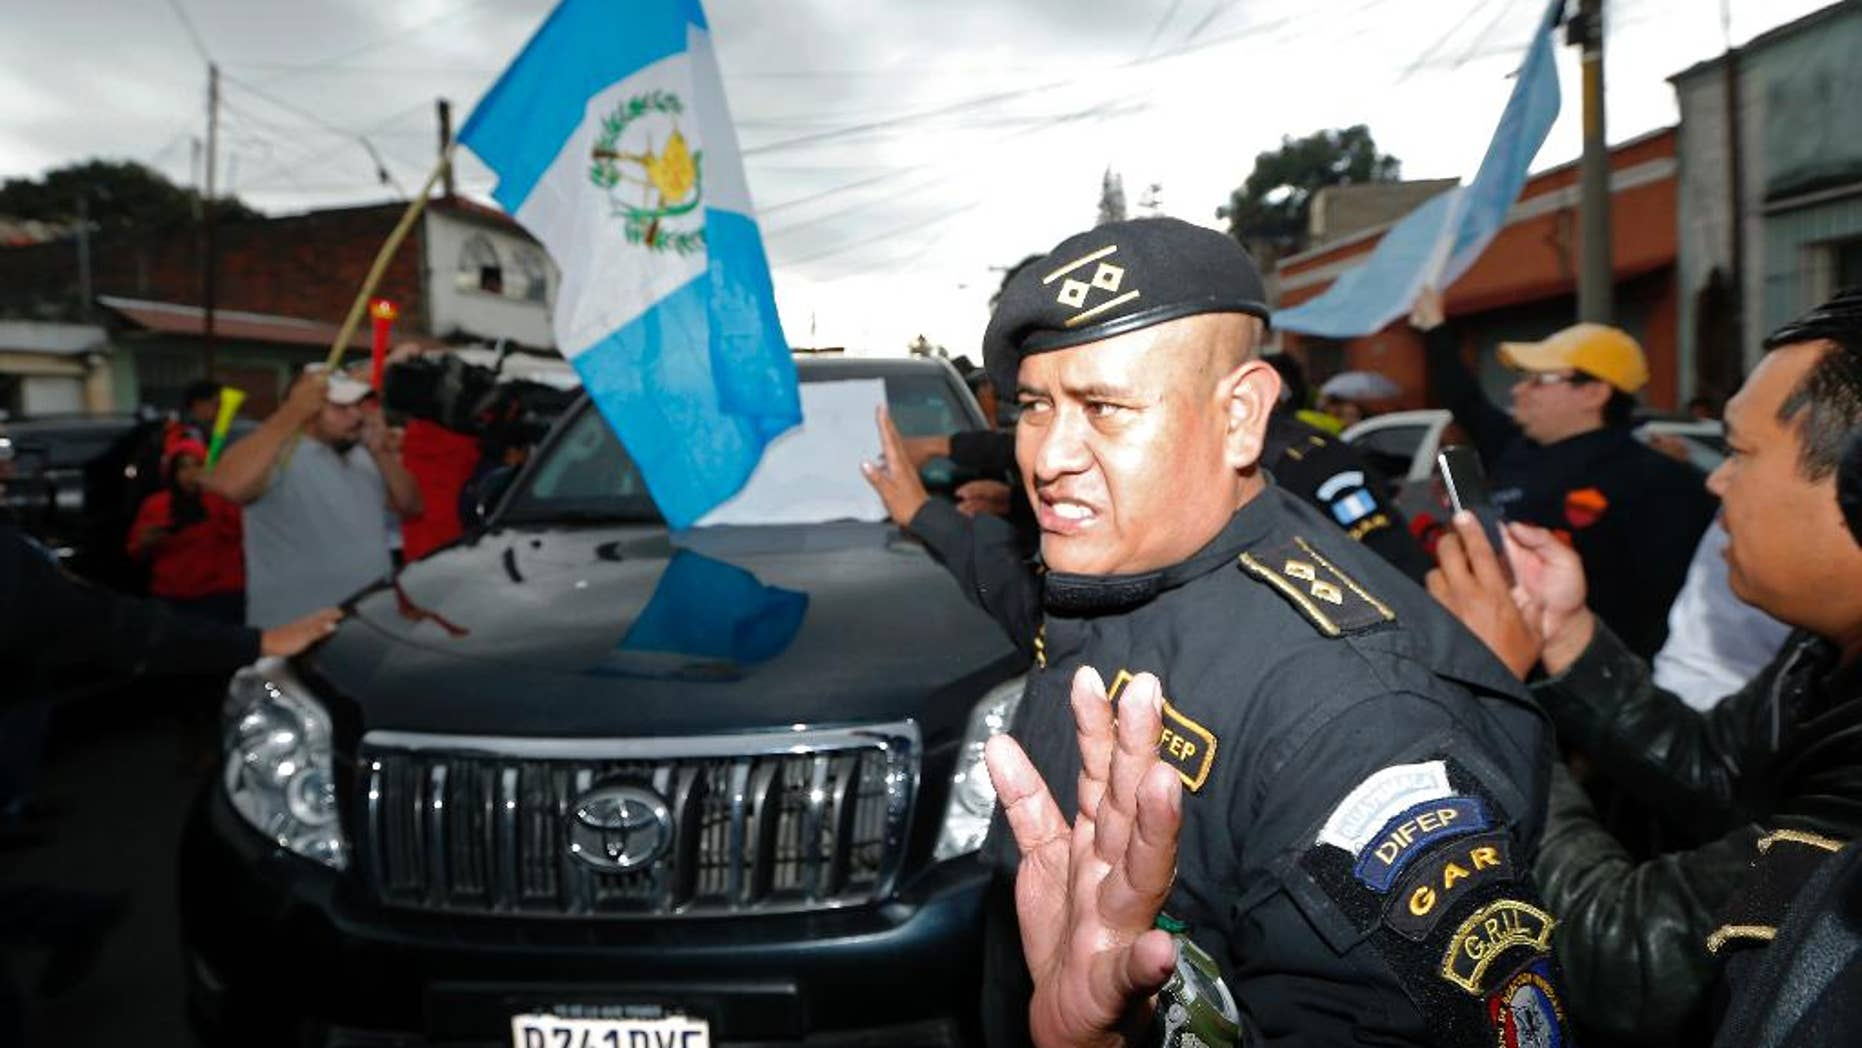 A Guatemalan police officer tries to clear a path for a vehicle carrying former President Otto Perez Molina, as he is transported to the Matamoros military barracks, in Guatemala City, Thursday, Sept 3, 2015. Perez Molina will spend the night in custody before a court hearing into corruption allegations against him reconvenes. He was taken from the court in an SUV and escorted by a dozen police vehicles, initially surrounded by a scrum of media cameras. (AP Photo/Moises Castillo)